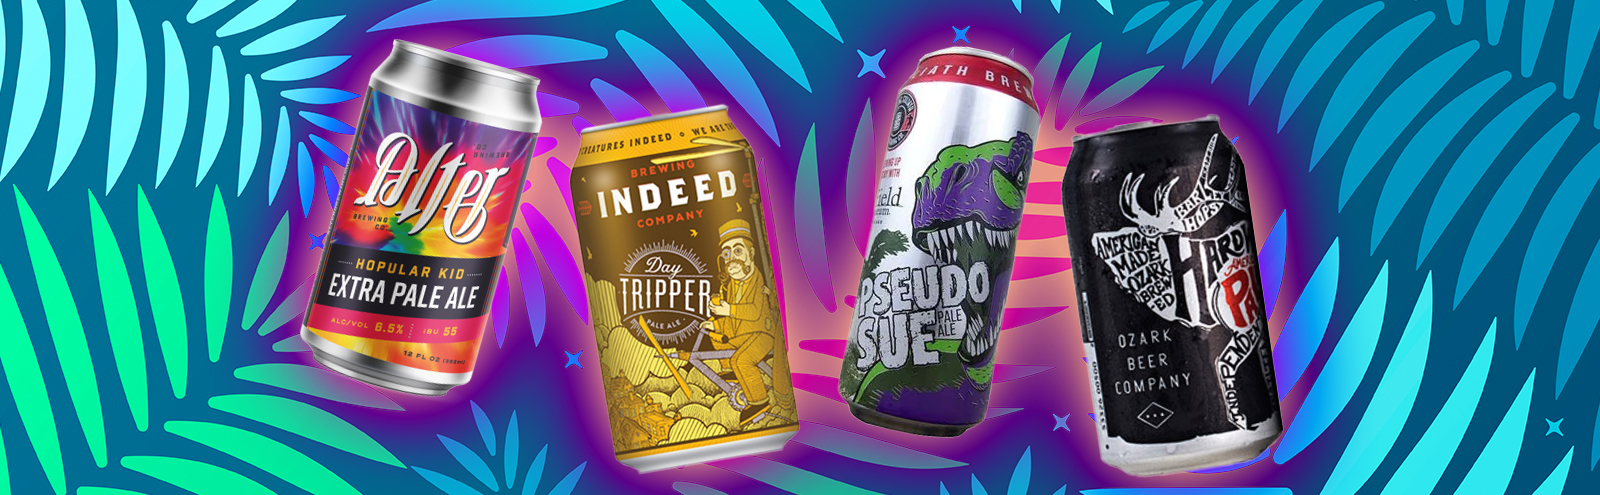 The Best Pale Ales For Serious Fans of Hops, According To Bartenders